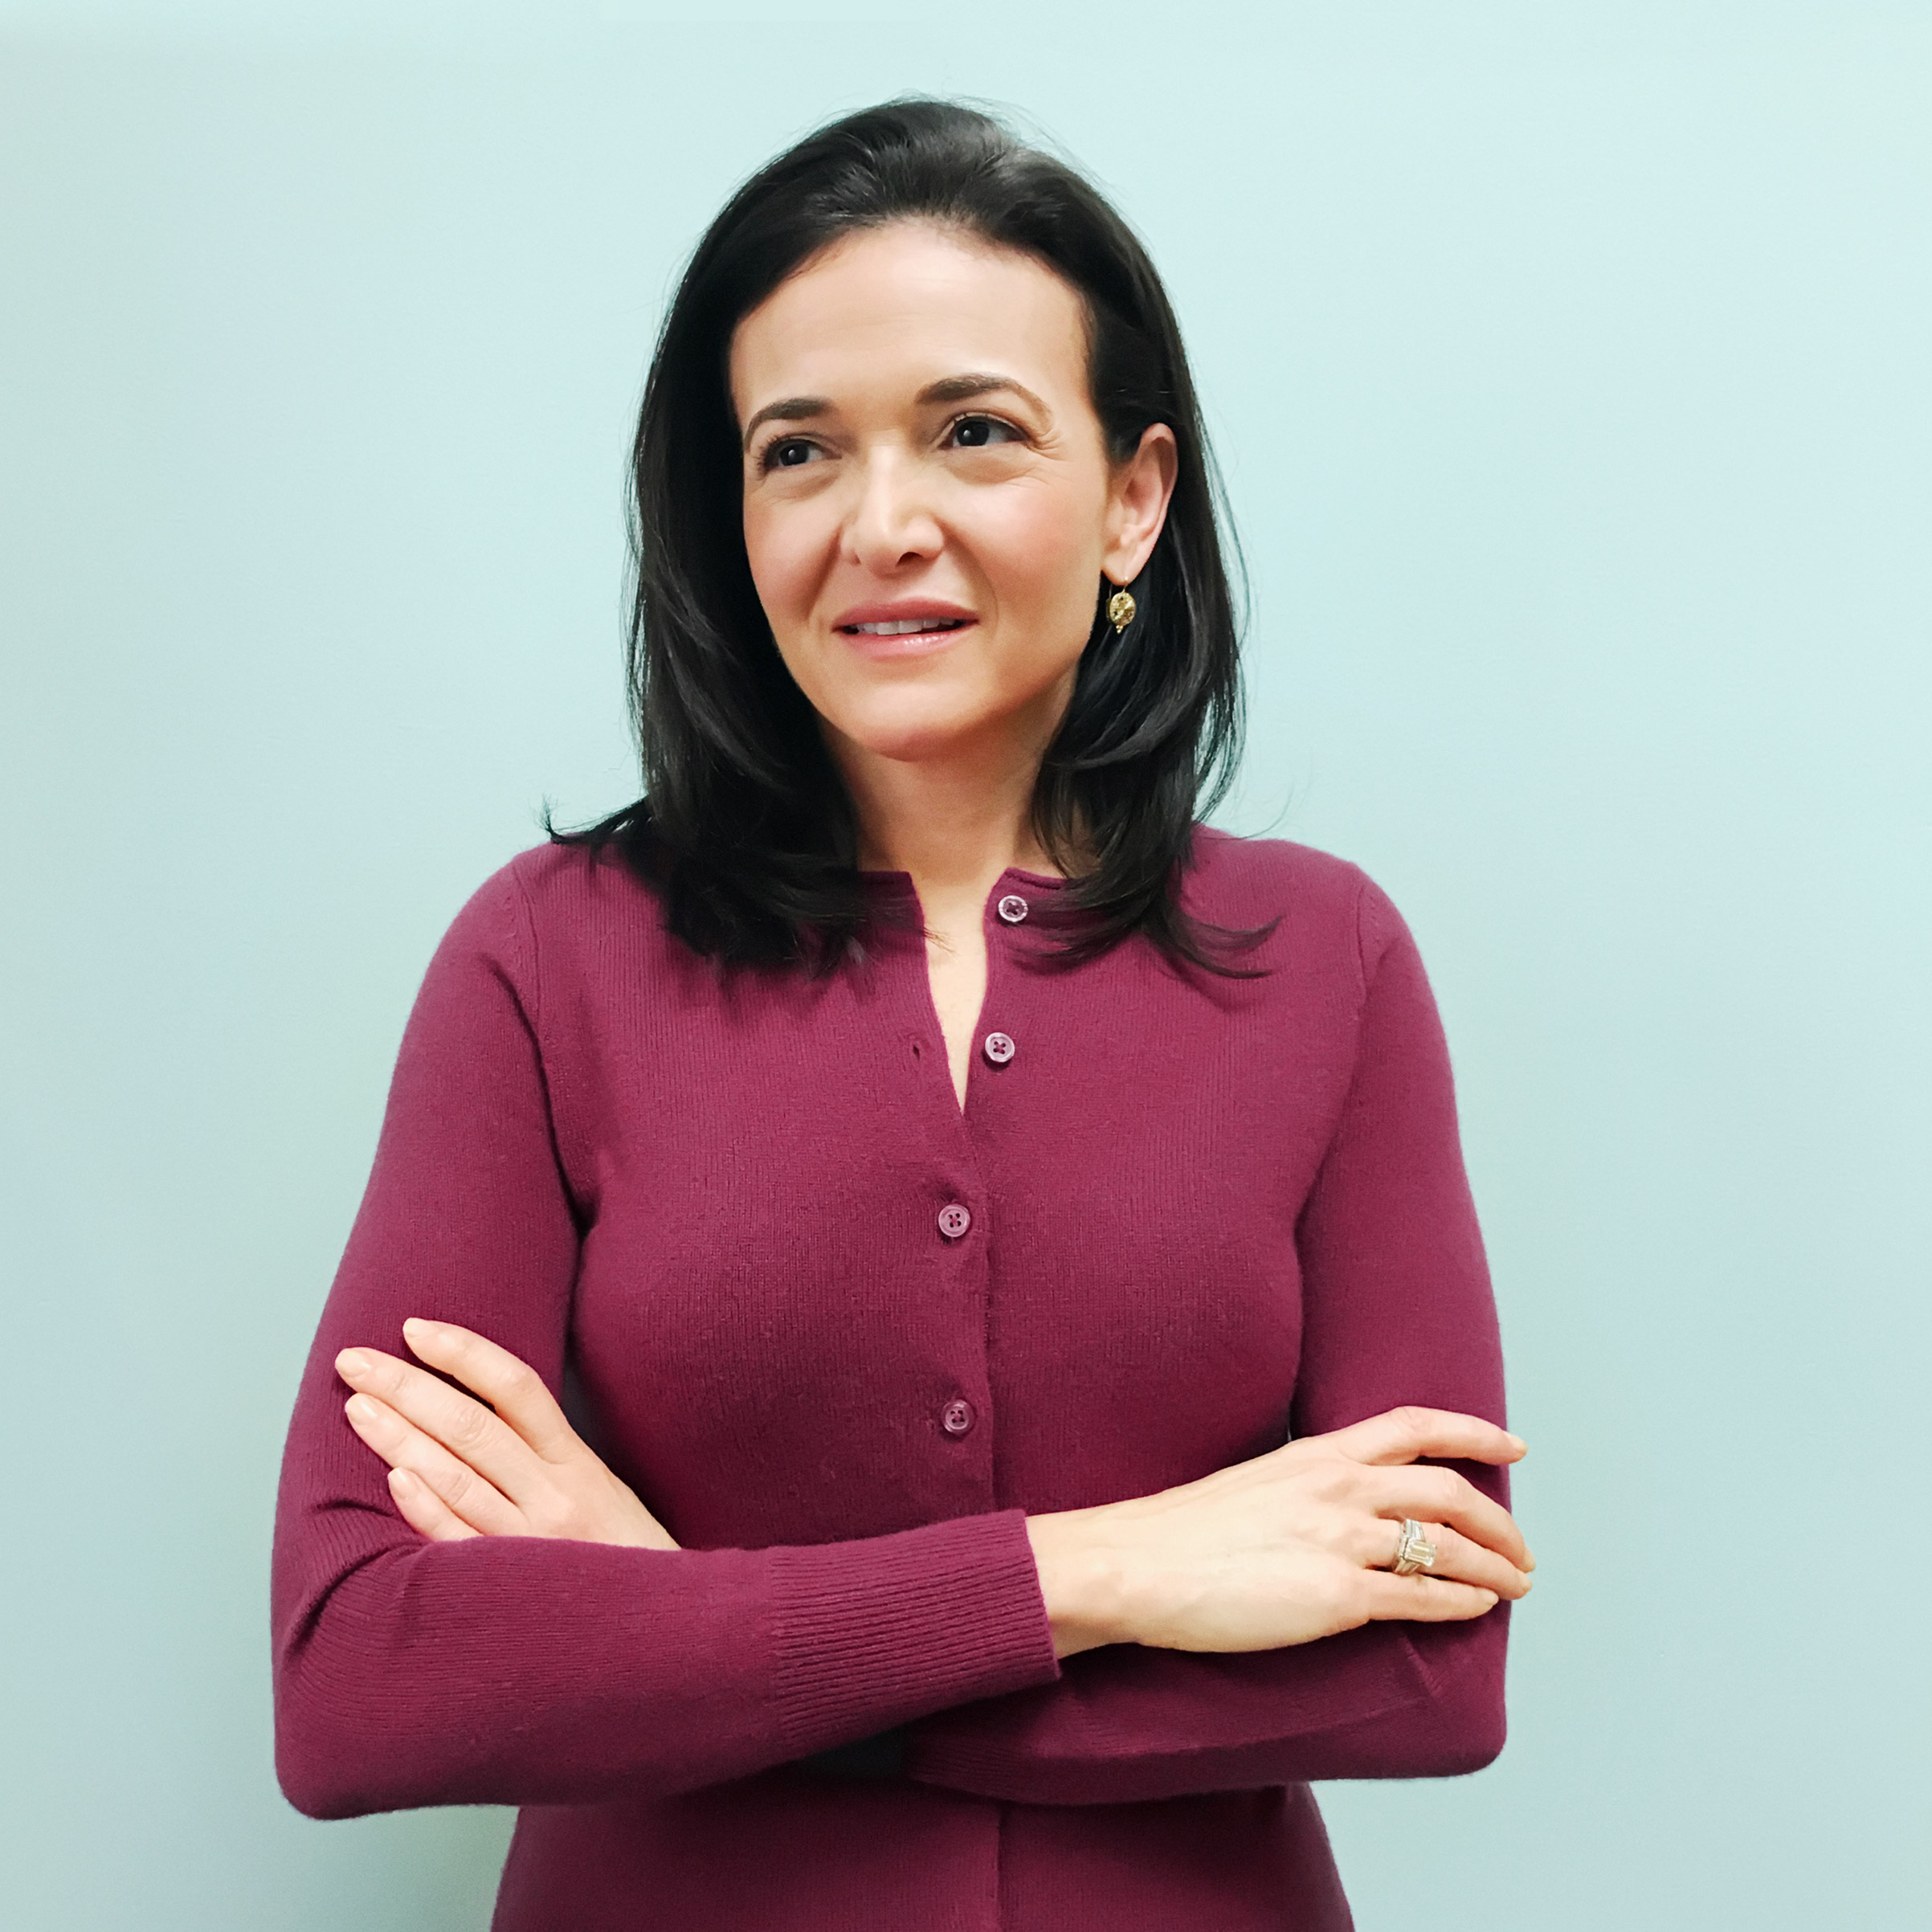 Portrait of Sheryl Sandberg, photographed at Facebook HQ in Menlo Park, CA, on February 10, 2017.